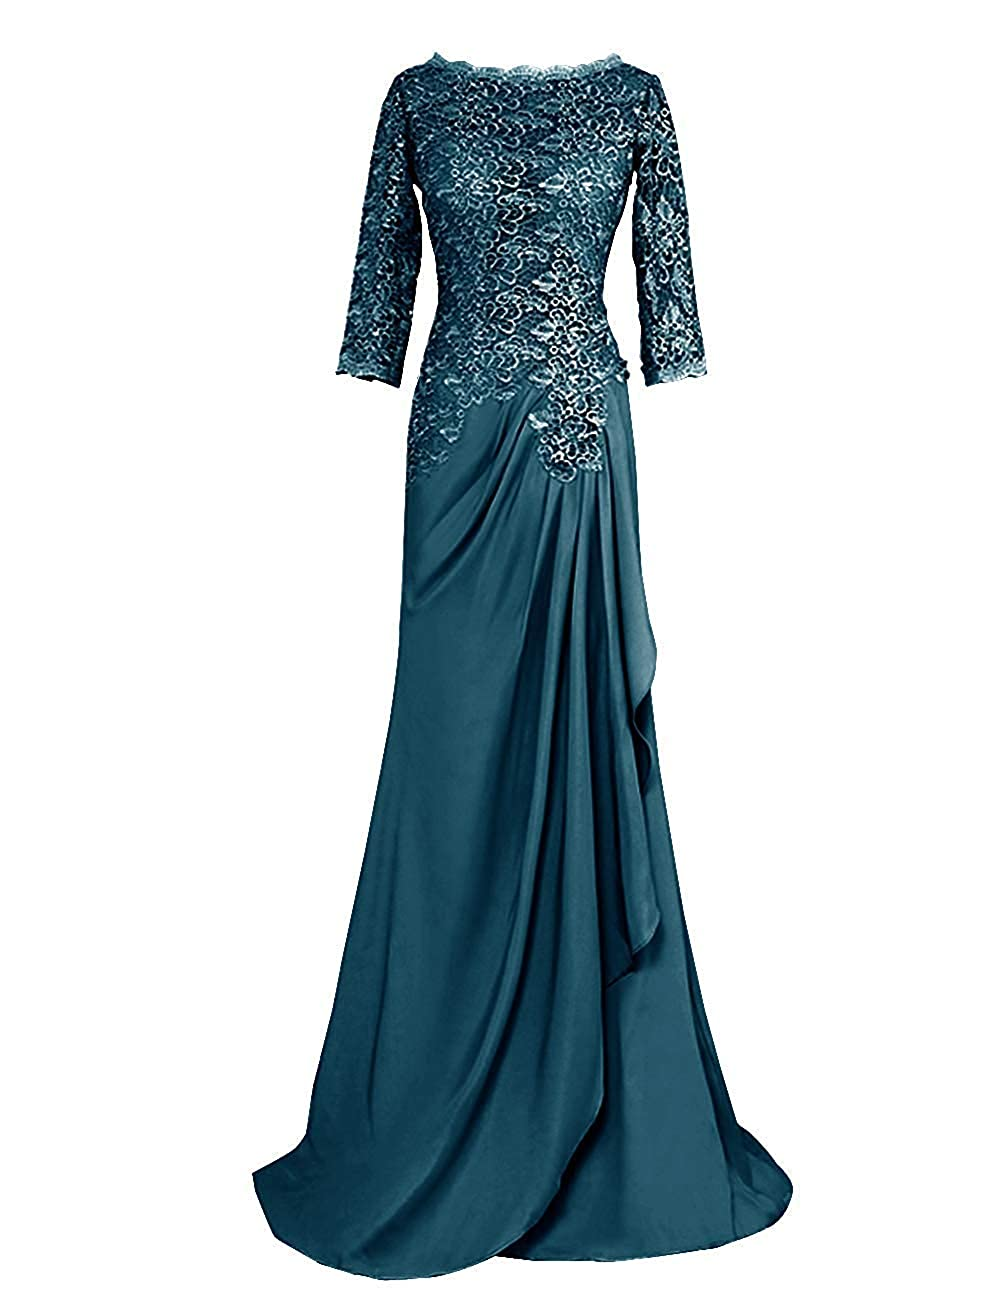 Teal Mother of The Bride Dresses Long Sleeve Lace Evening Dress Formal Gowns Mother Gown